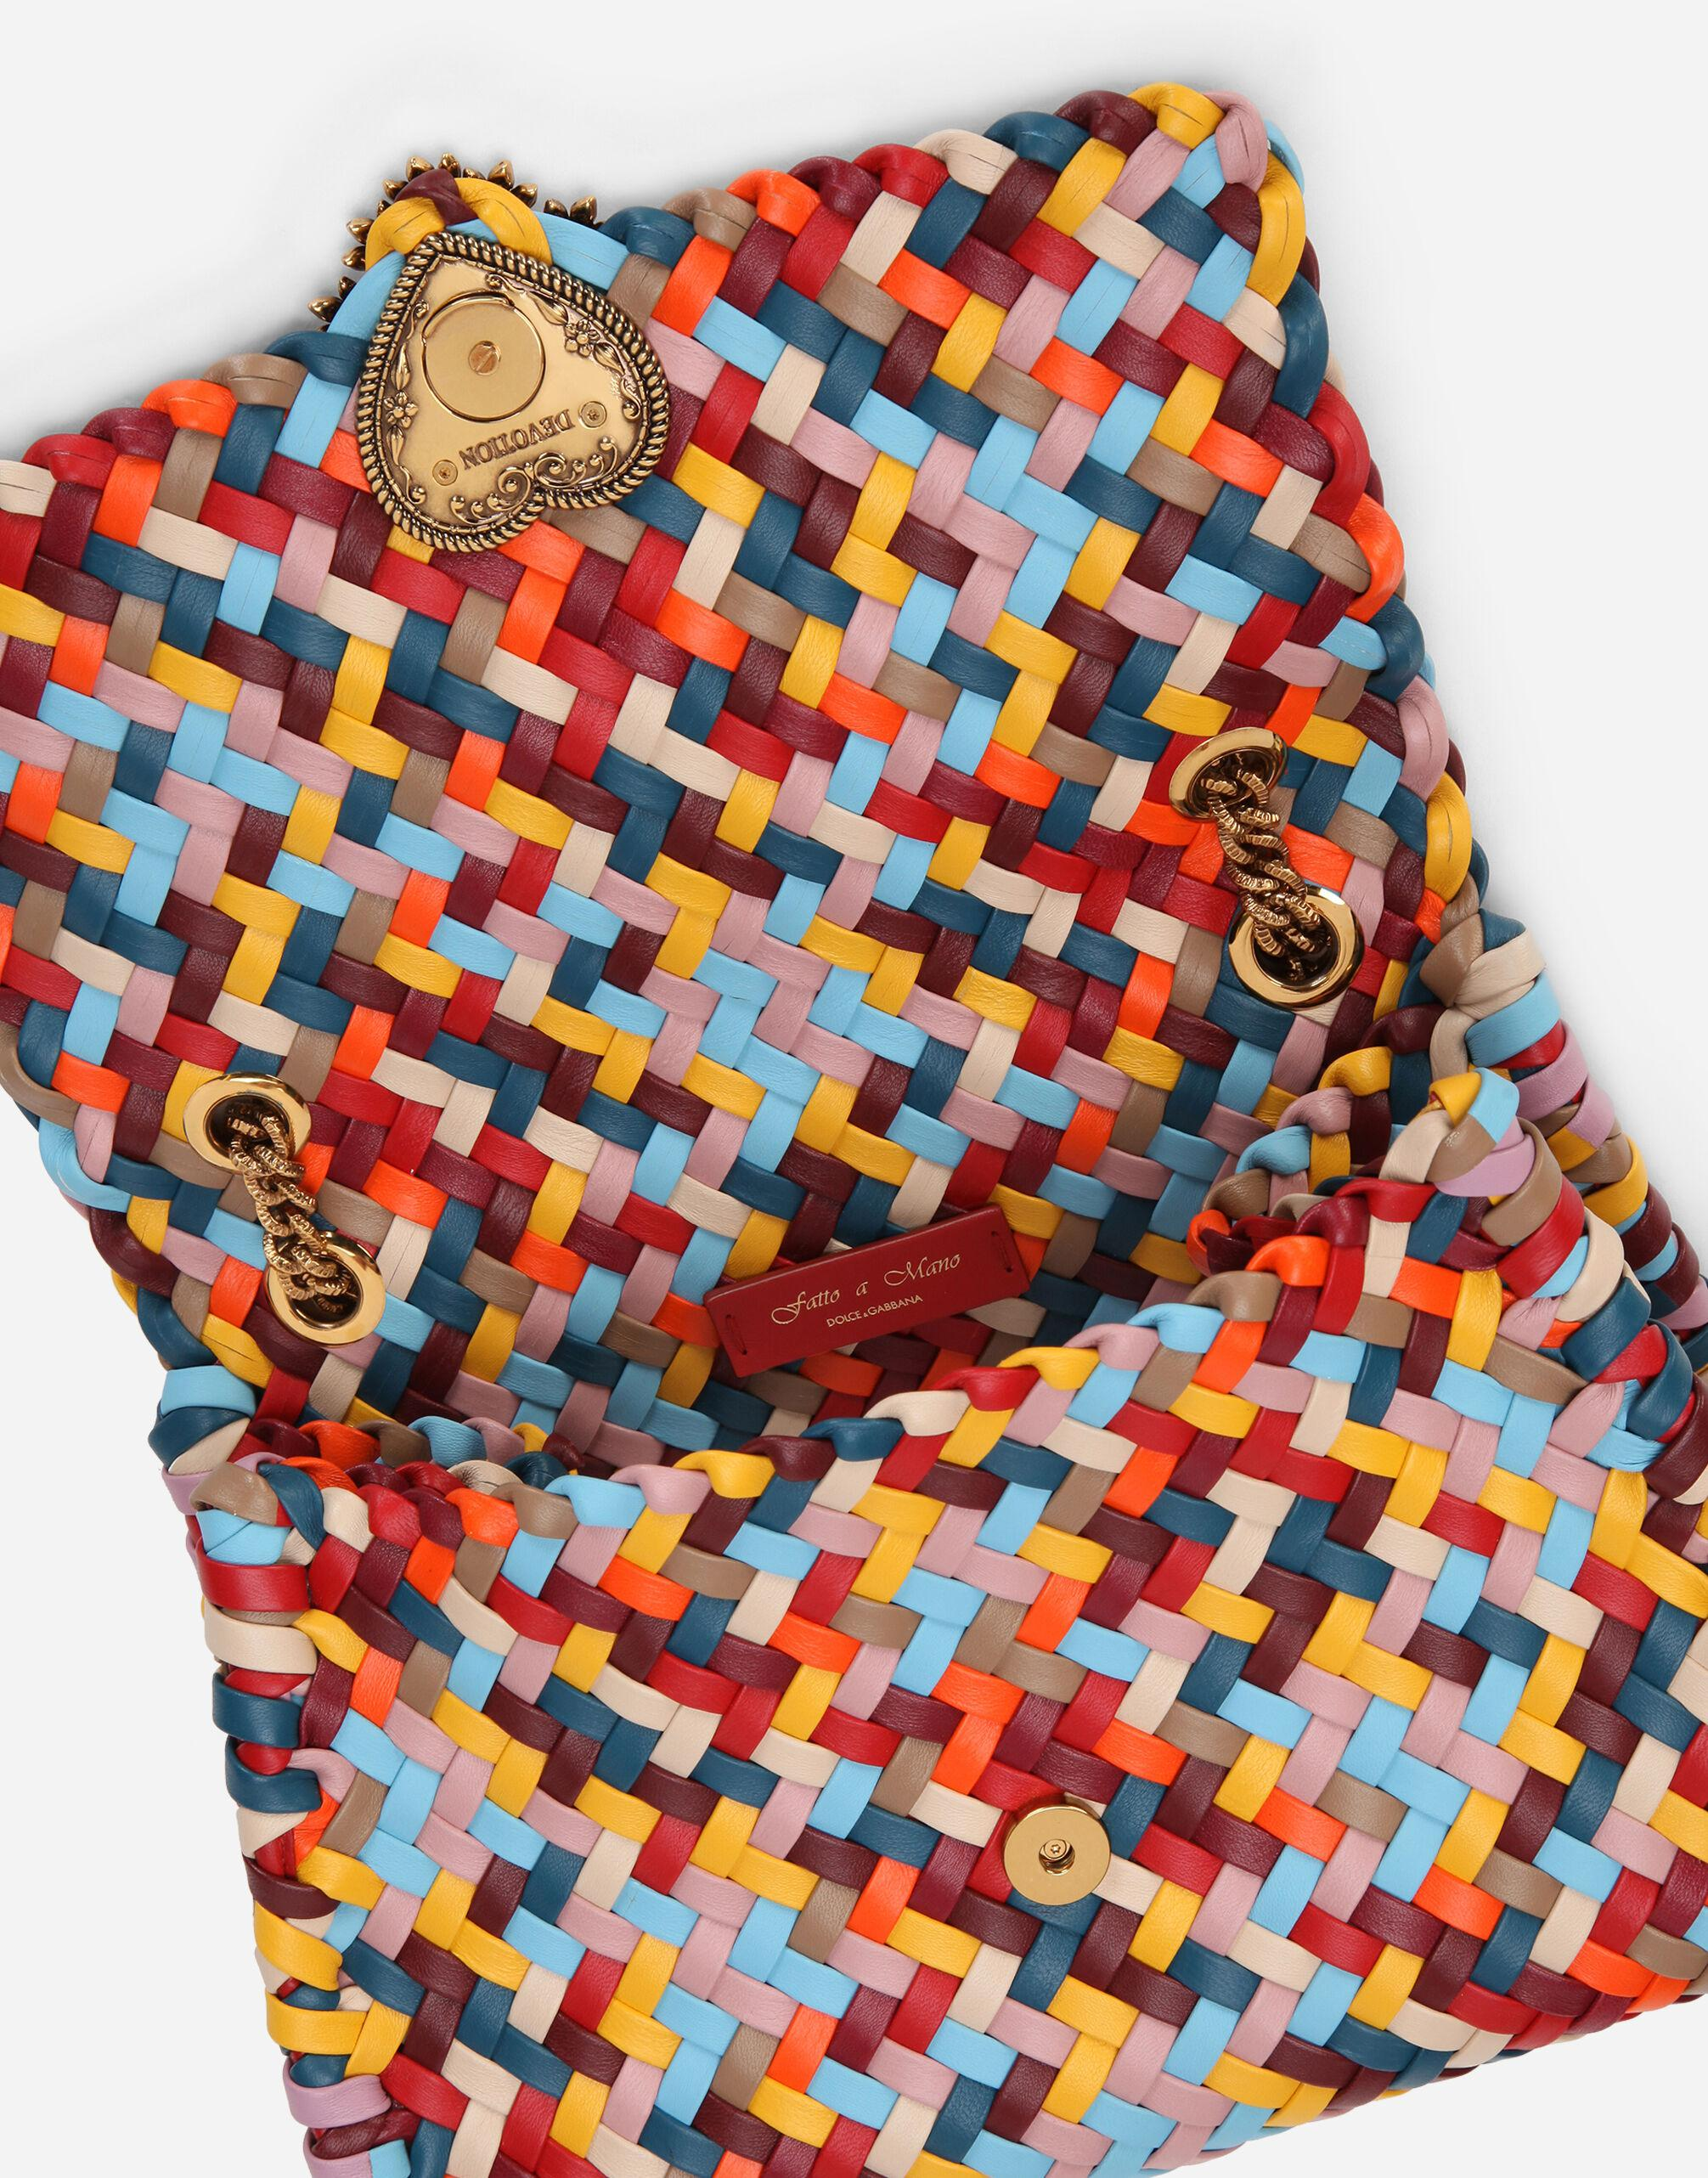 Large Devotion shoulder bag in multi-colored woven nappa leather 4